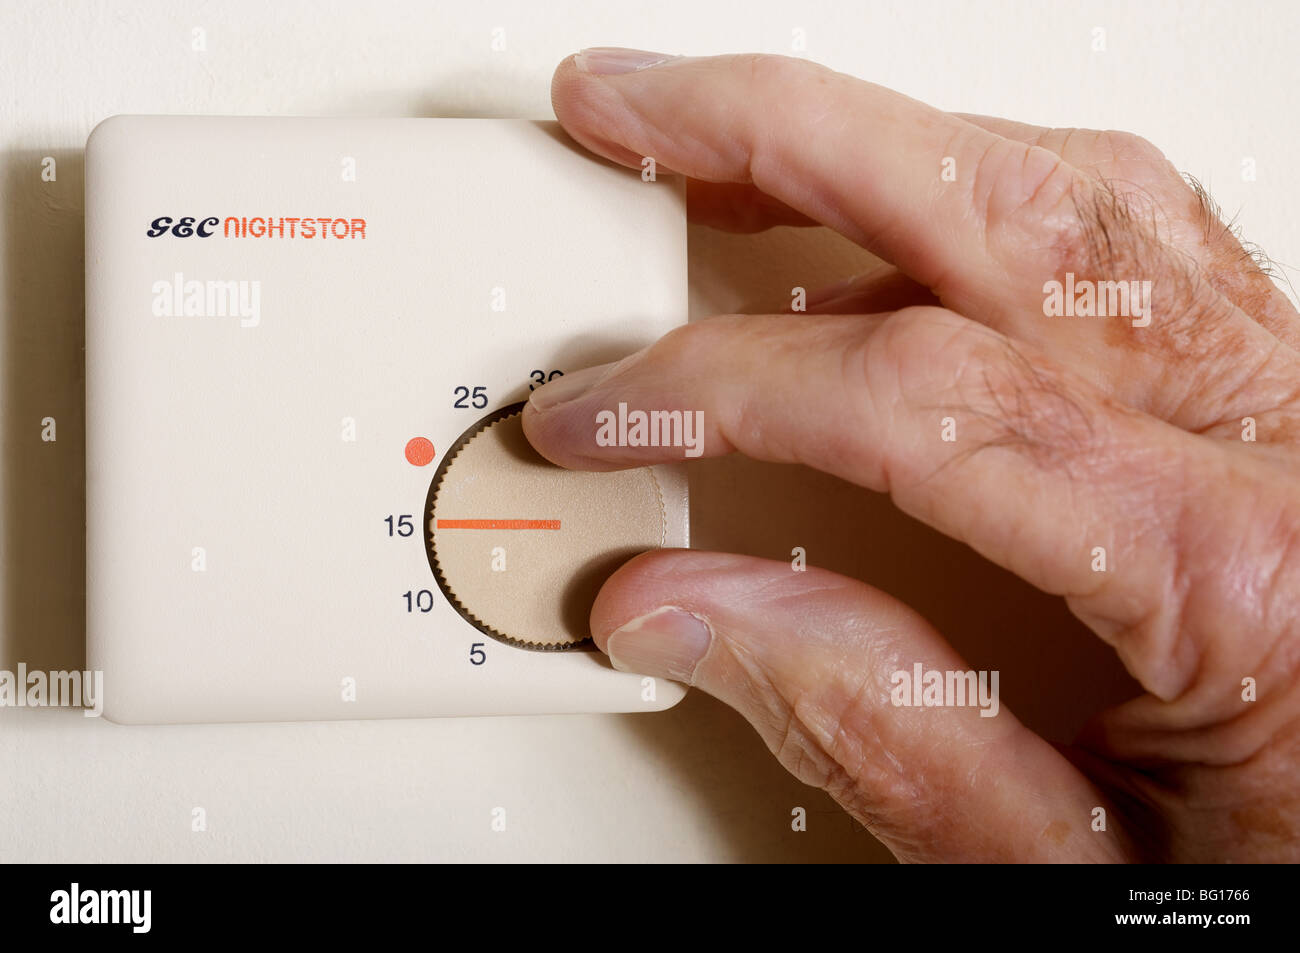 Old aged pensioner turning down the temperature control on his central heating thermostat - Stock Image